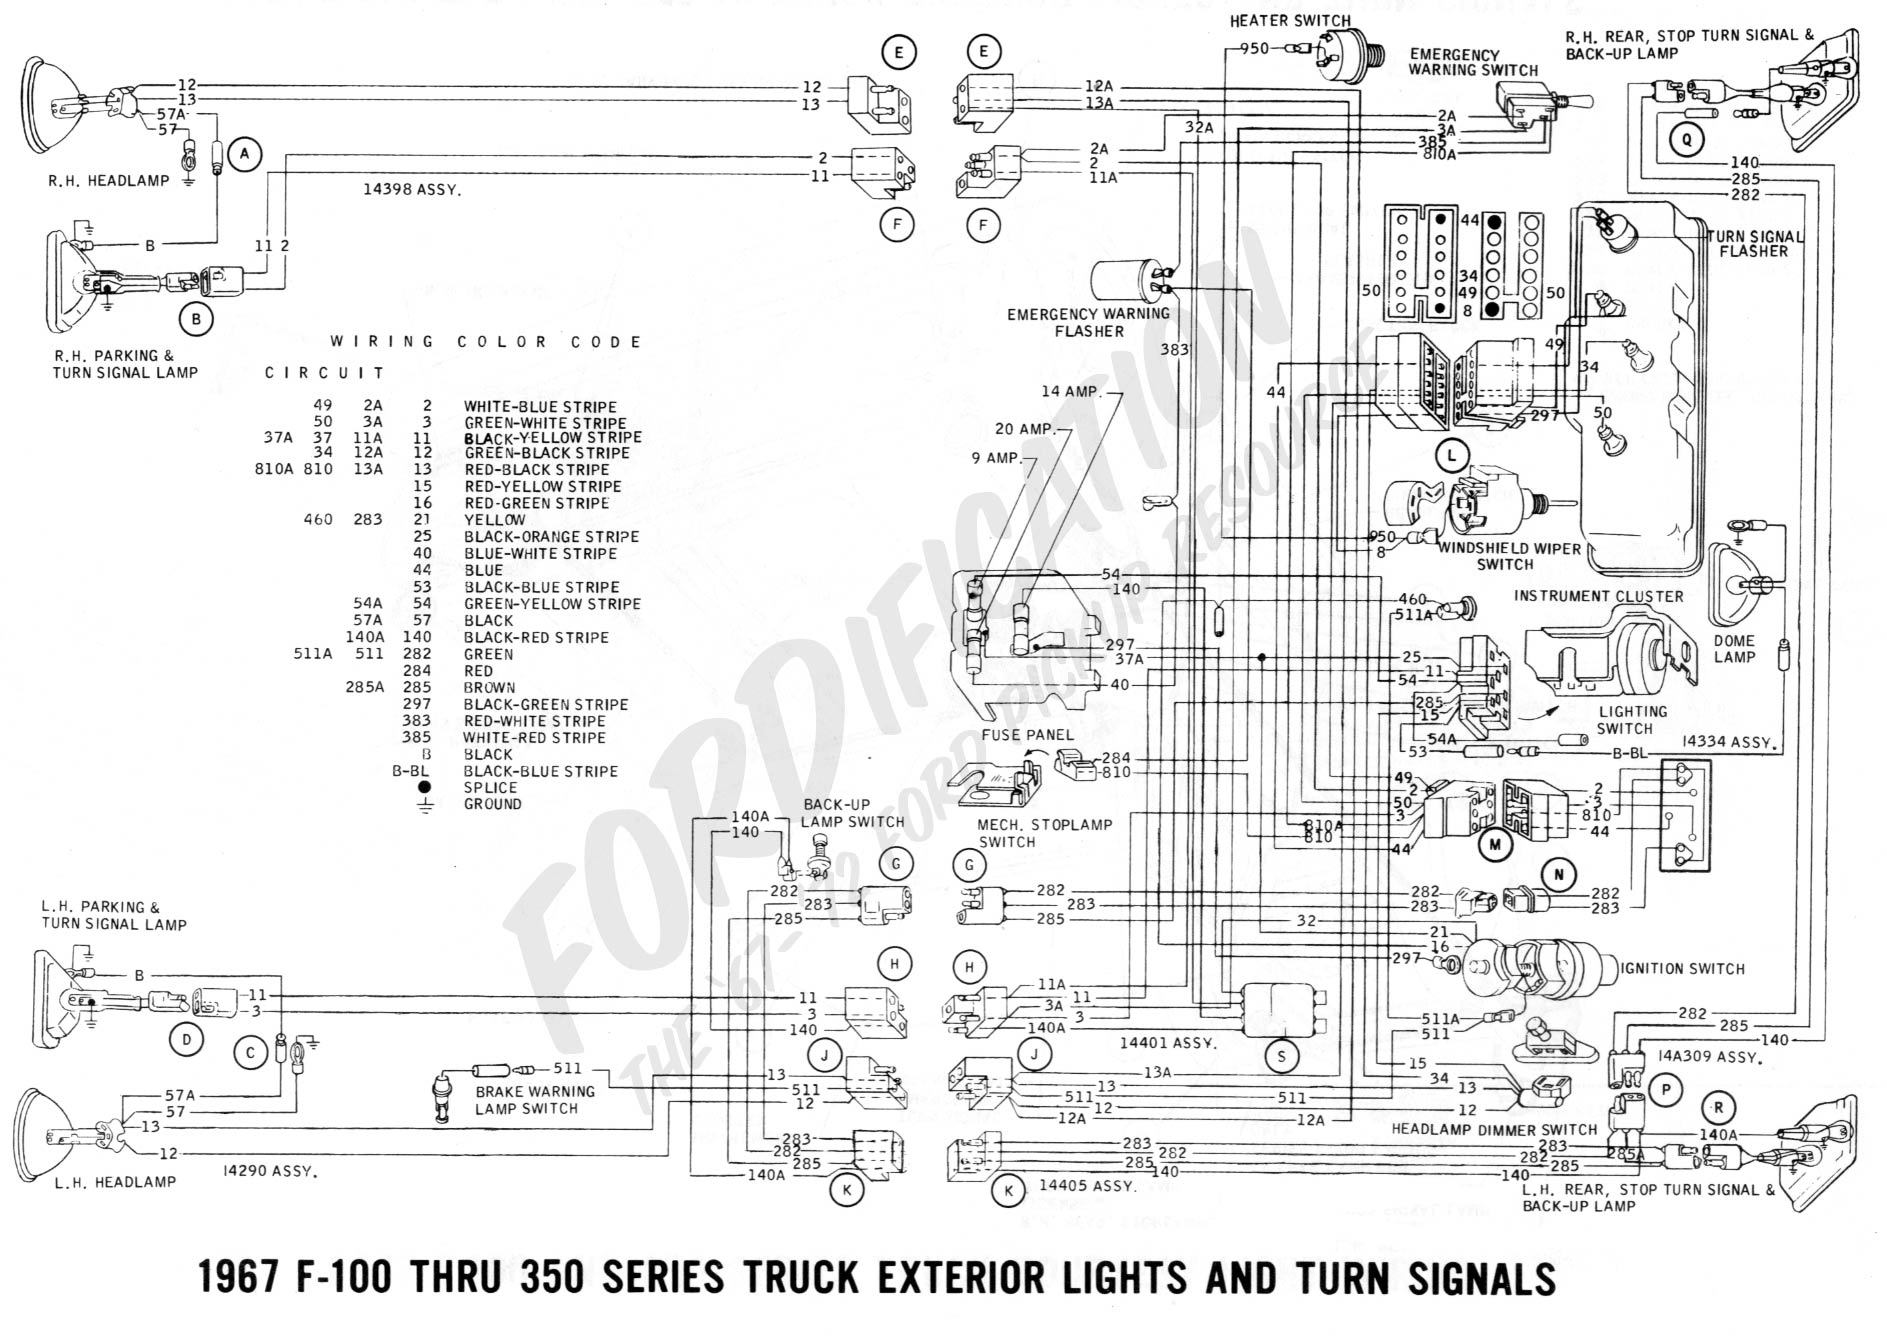 1982 peterbilt 356 turn signal wiring diagram free vehicle wiring rh narfiyanstudio com 1995 Grand AM Wiring Diagram 2002 Grand AM Wiring Diagram